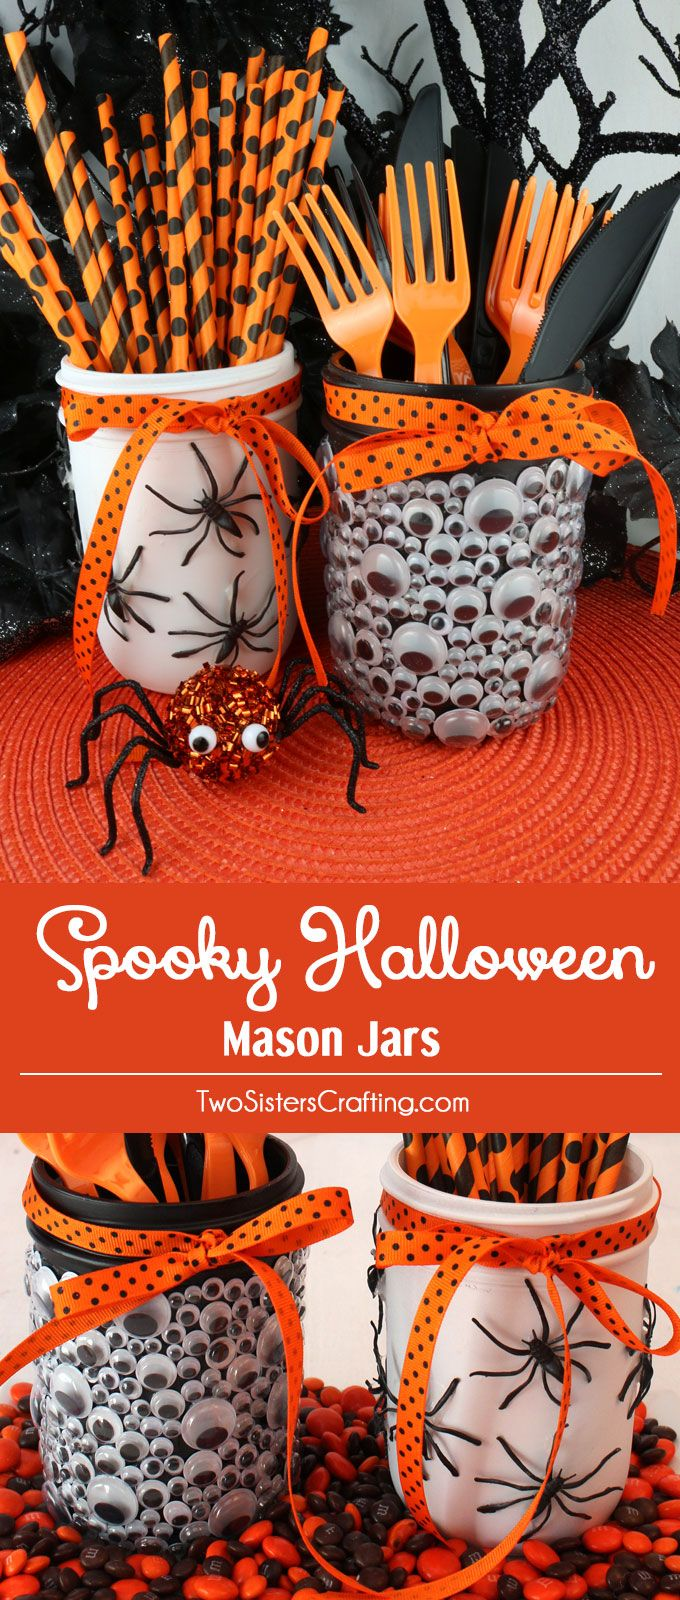 35+ of the Most Spooktacular Halloween Ideas on Pinterest - Pinterest Halloween Decorations